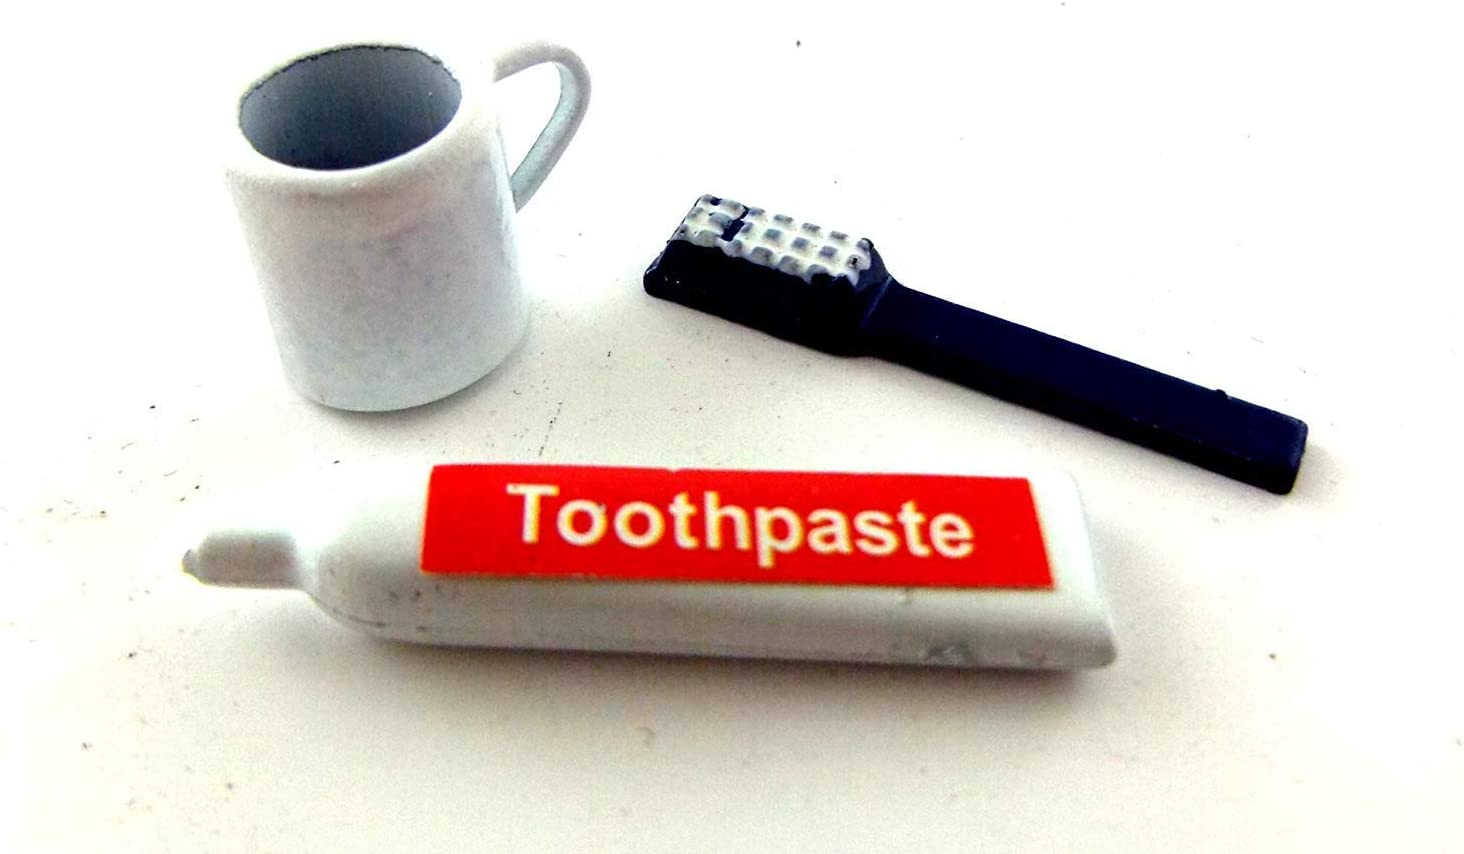 Dollhouse Miniature Set of Toothbrushes and Toothbrush Holder for 1:12 Bathroom